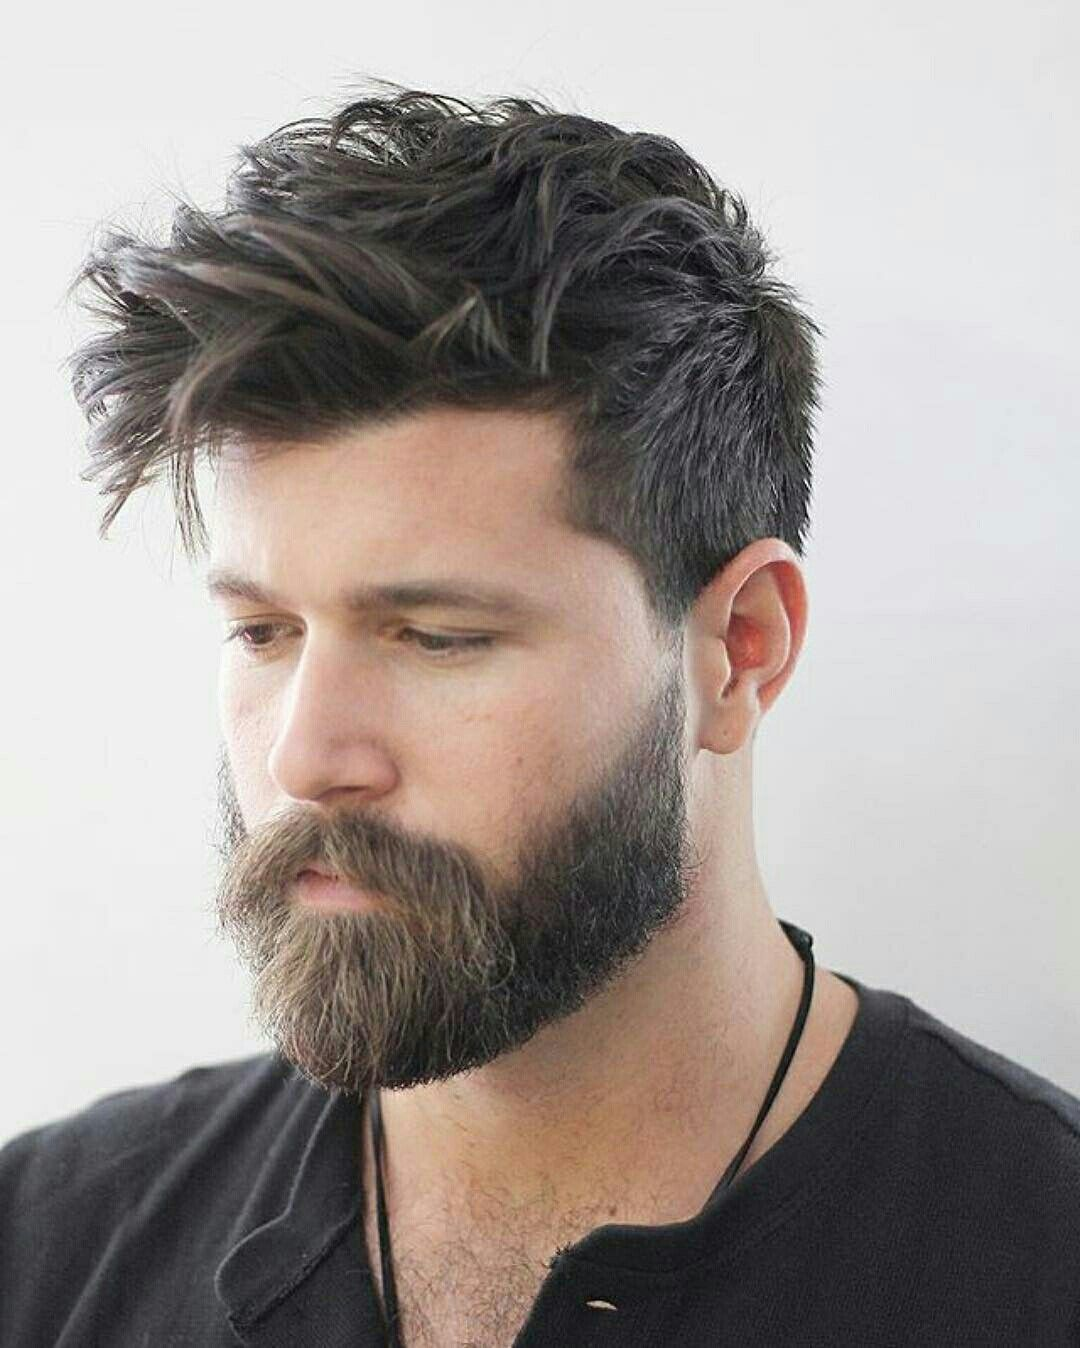 Mens haircuts with beards beards barbas  beard  pinterest  haircuts beard styles and hair